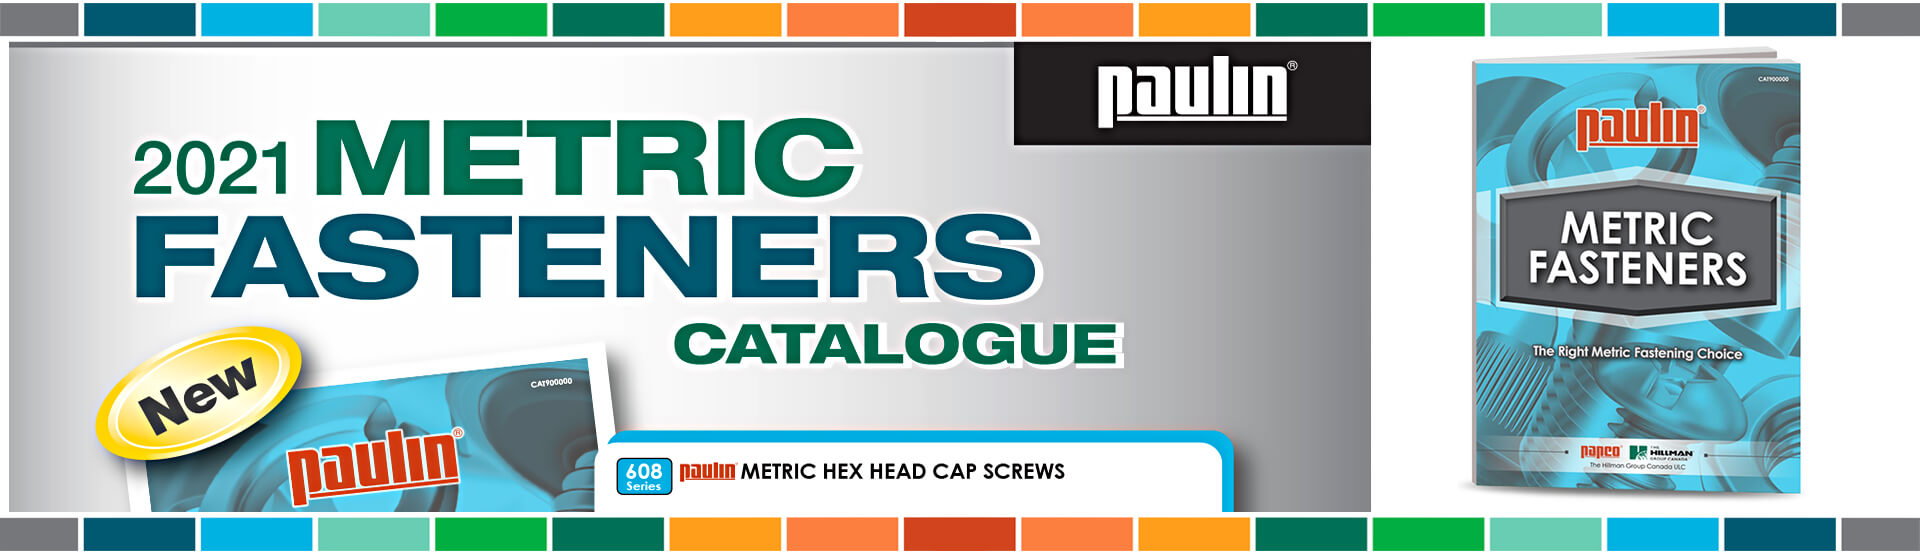 CAT 900000 New Fasteners Catalogue